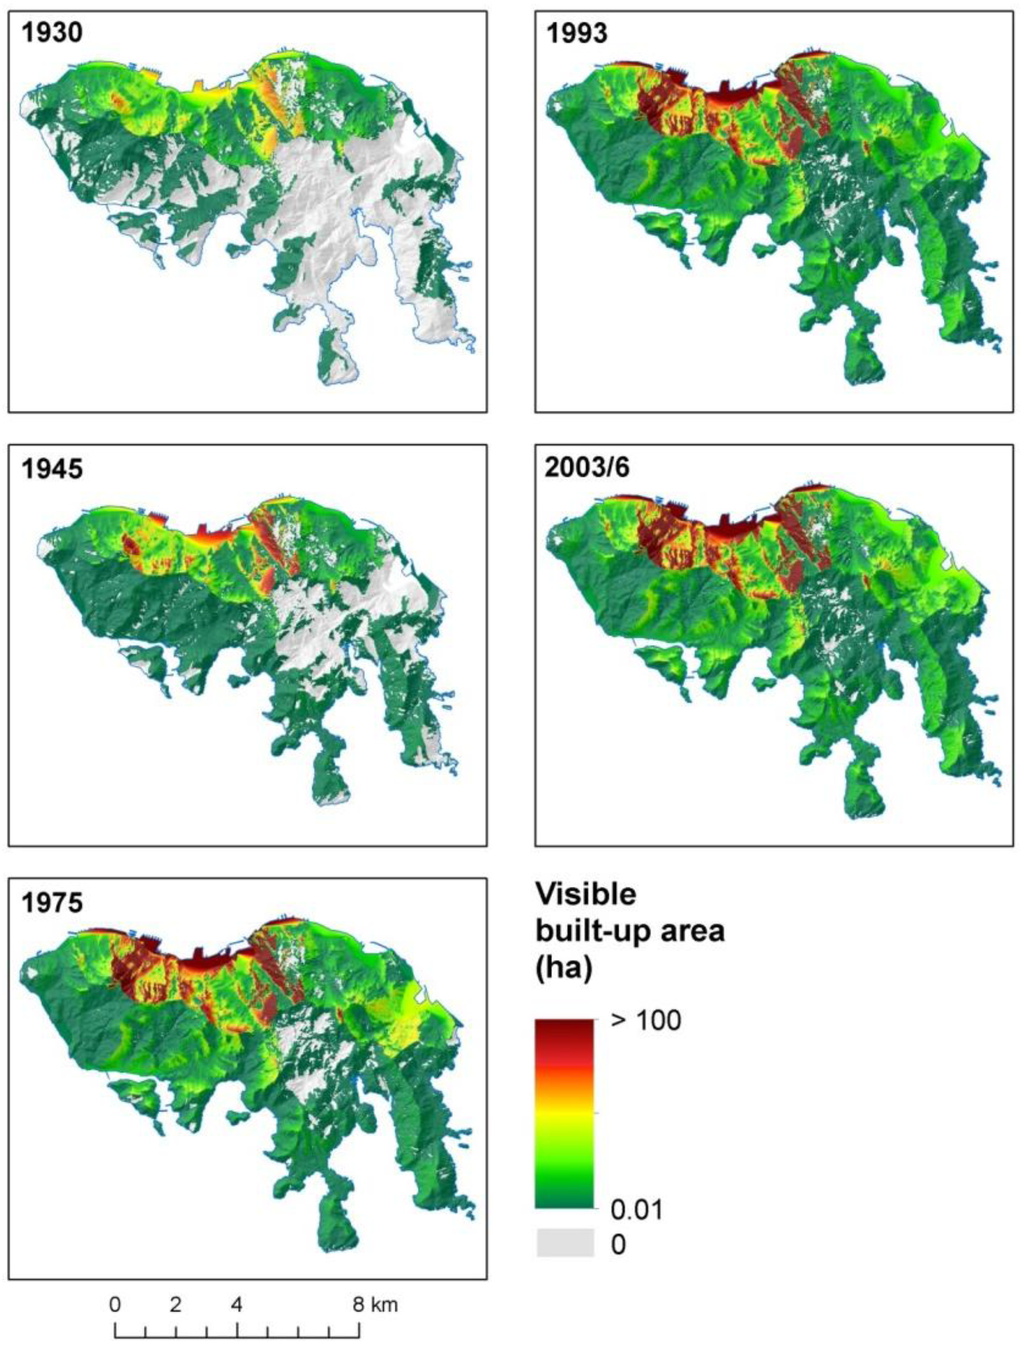 an analysis of hongkong Analysis of embodied energy use in the residential building of hong kong at the end of its life is common practice in hong kong, which is assumed in our analysis.